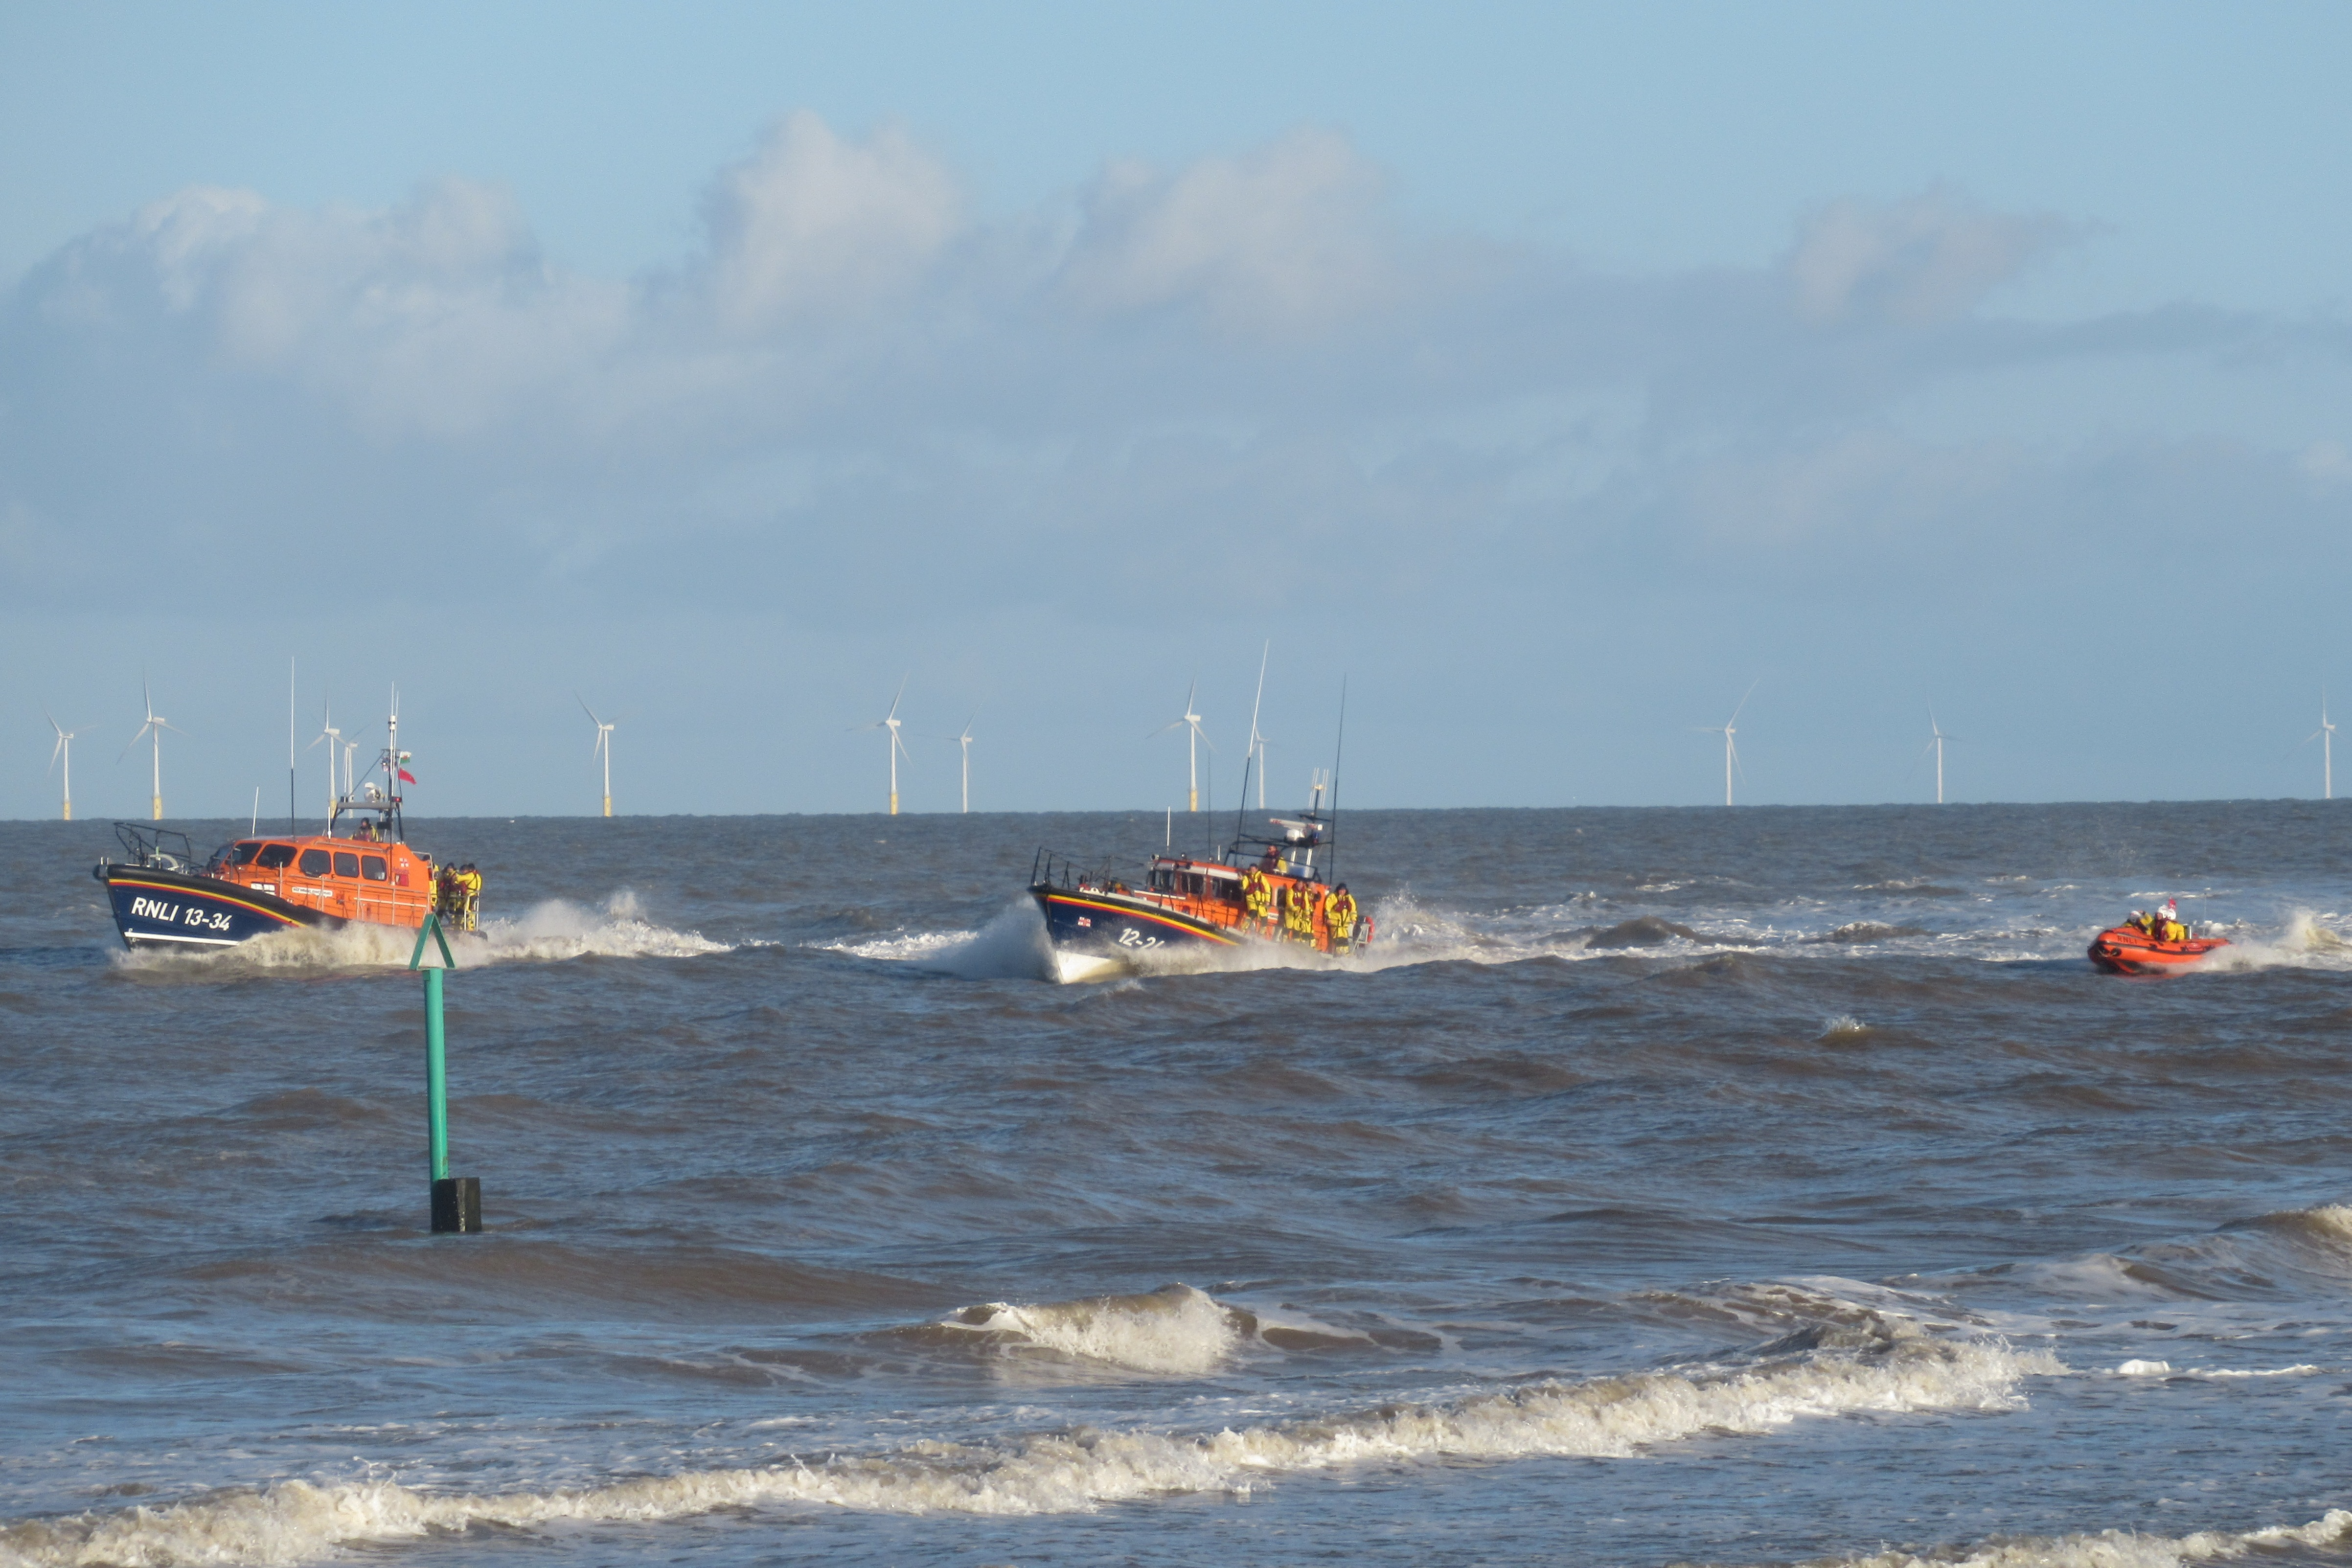 New Shannon, Mersey and ILB sail past station